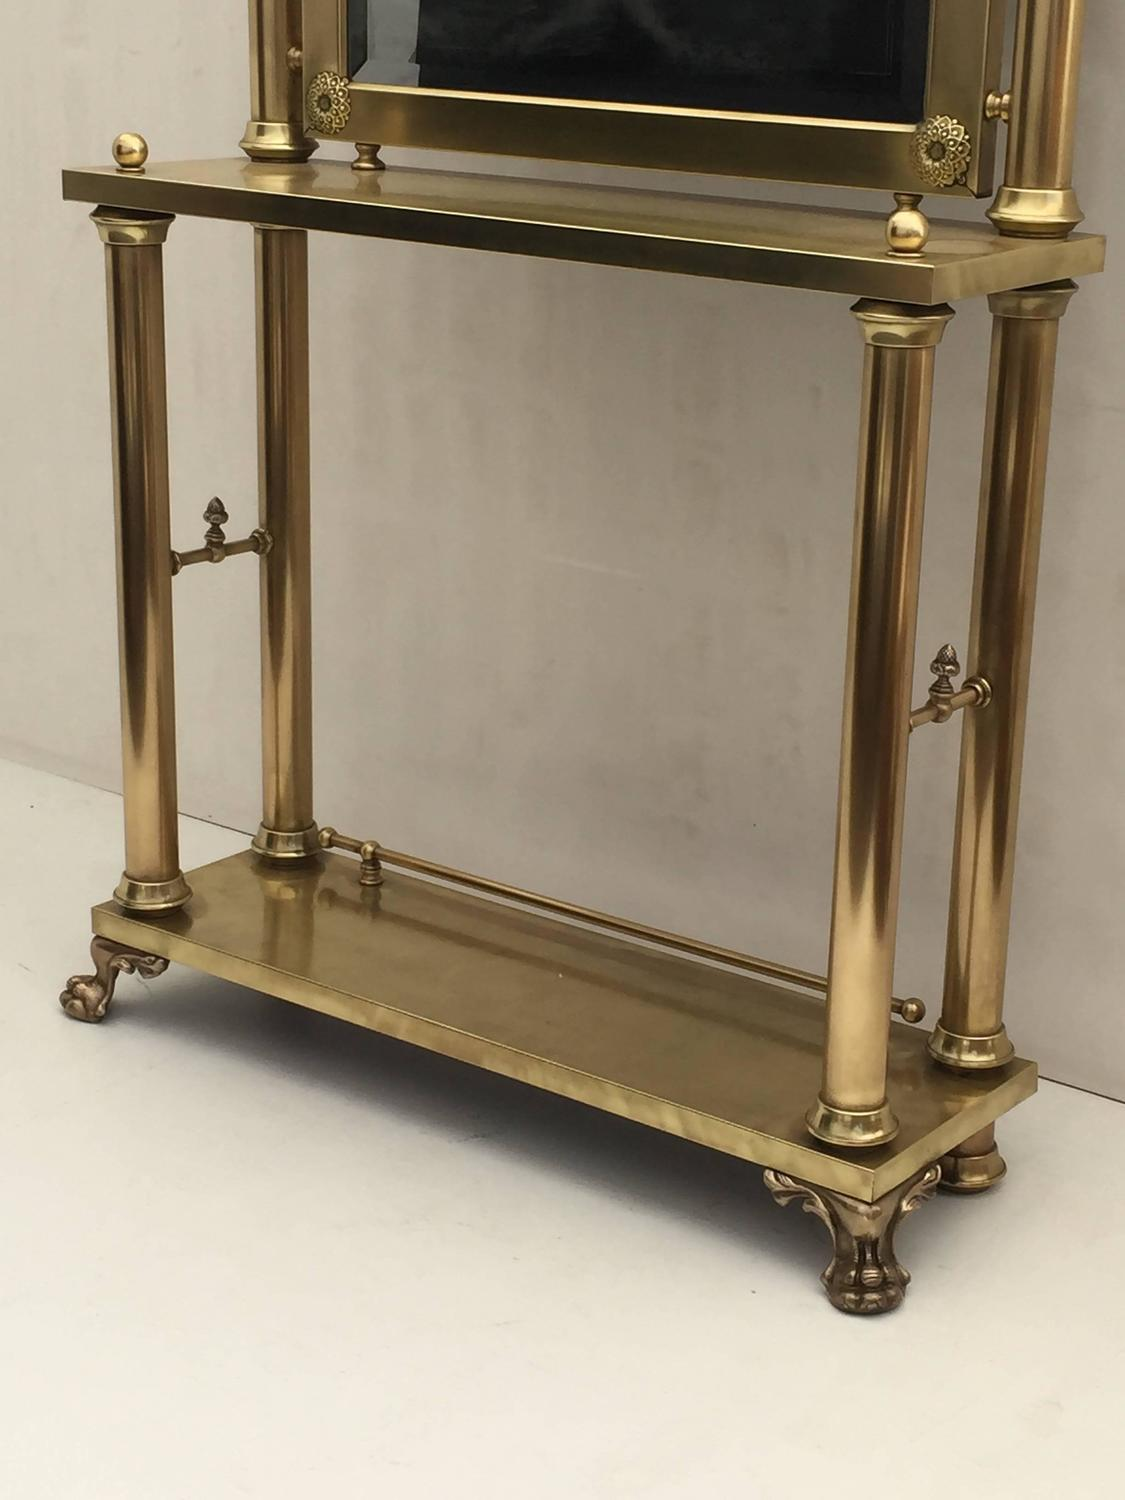 Foyer Table And Mirror On Sale On Kijiji : Neoclassical brass hall tree mirror coat hanger and